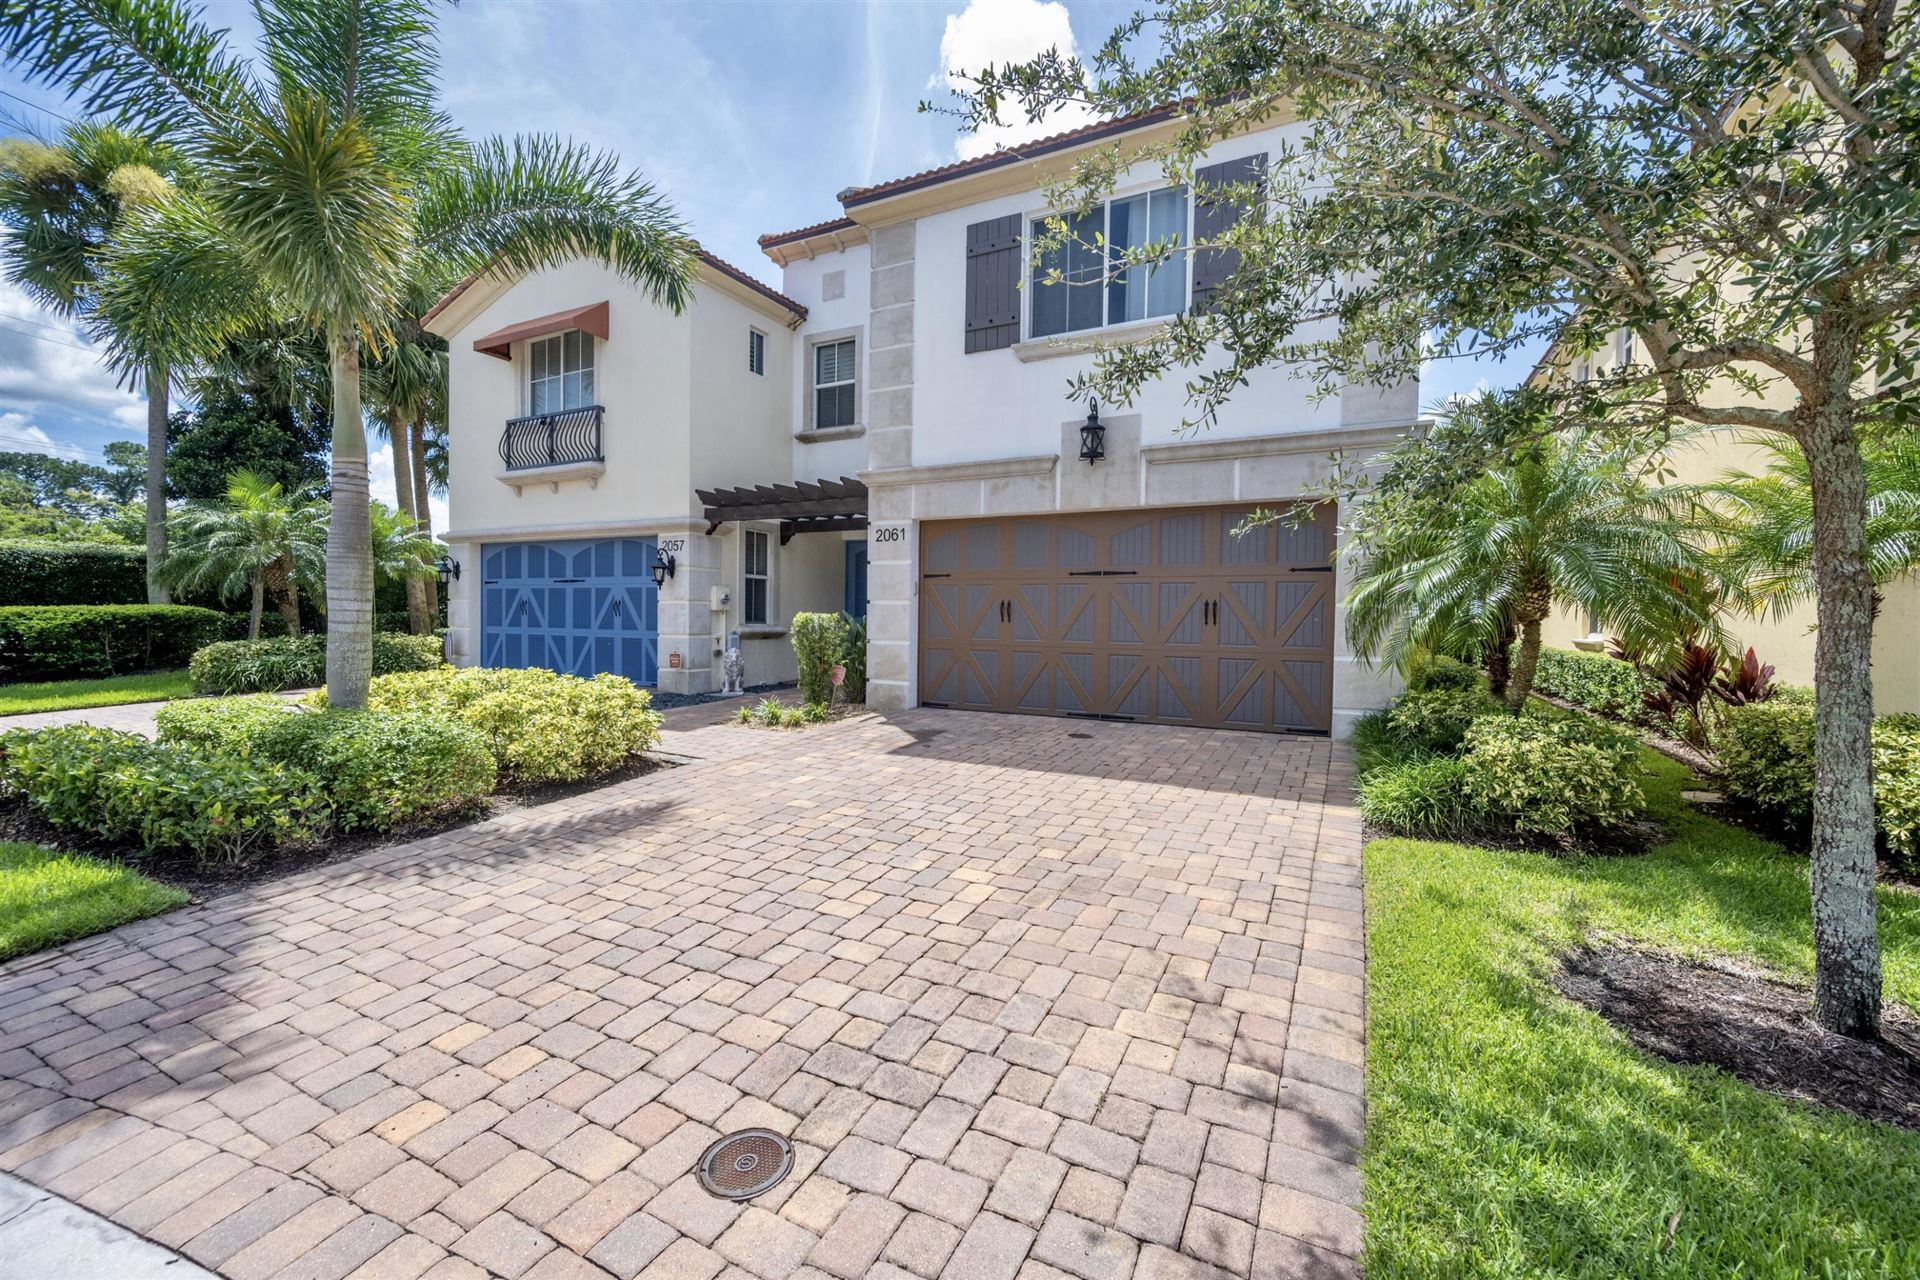 2061 Foxtail View Court, West Palm Beach, FL 33411 - #: RX-10629794